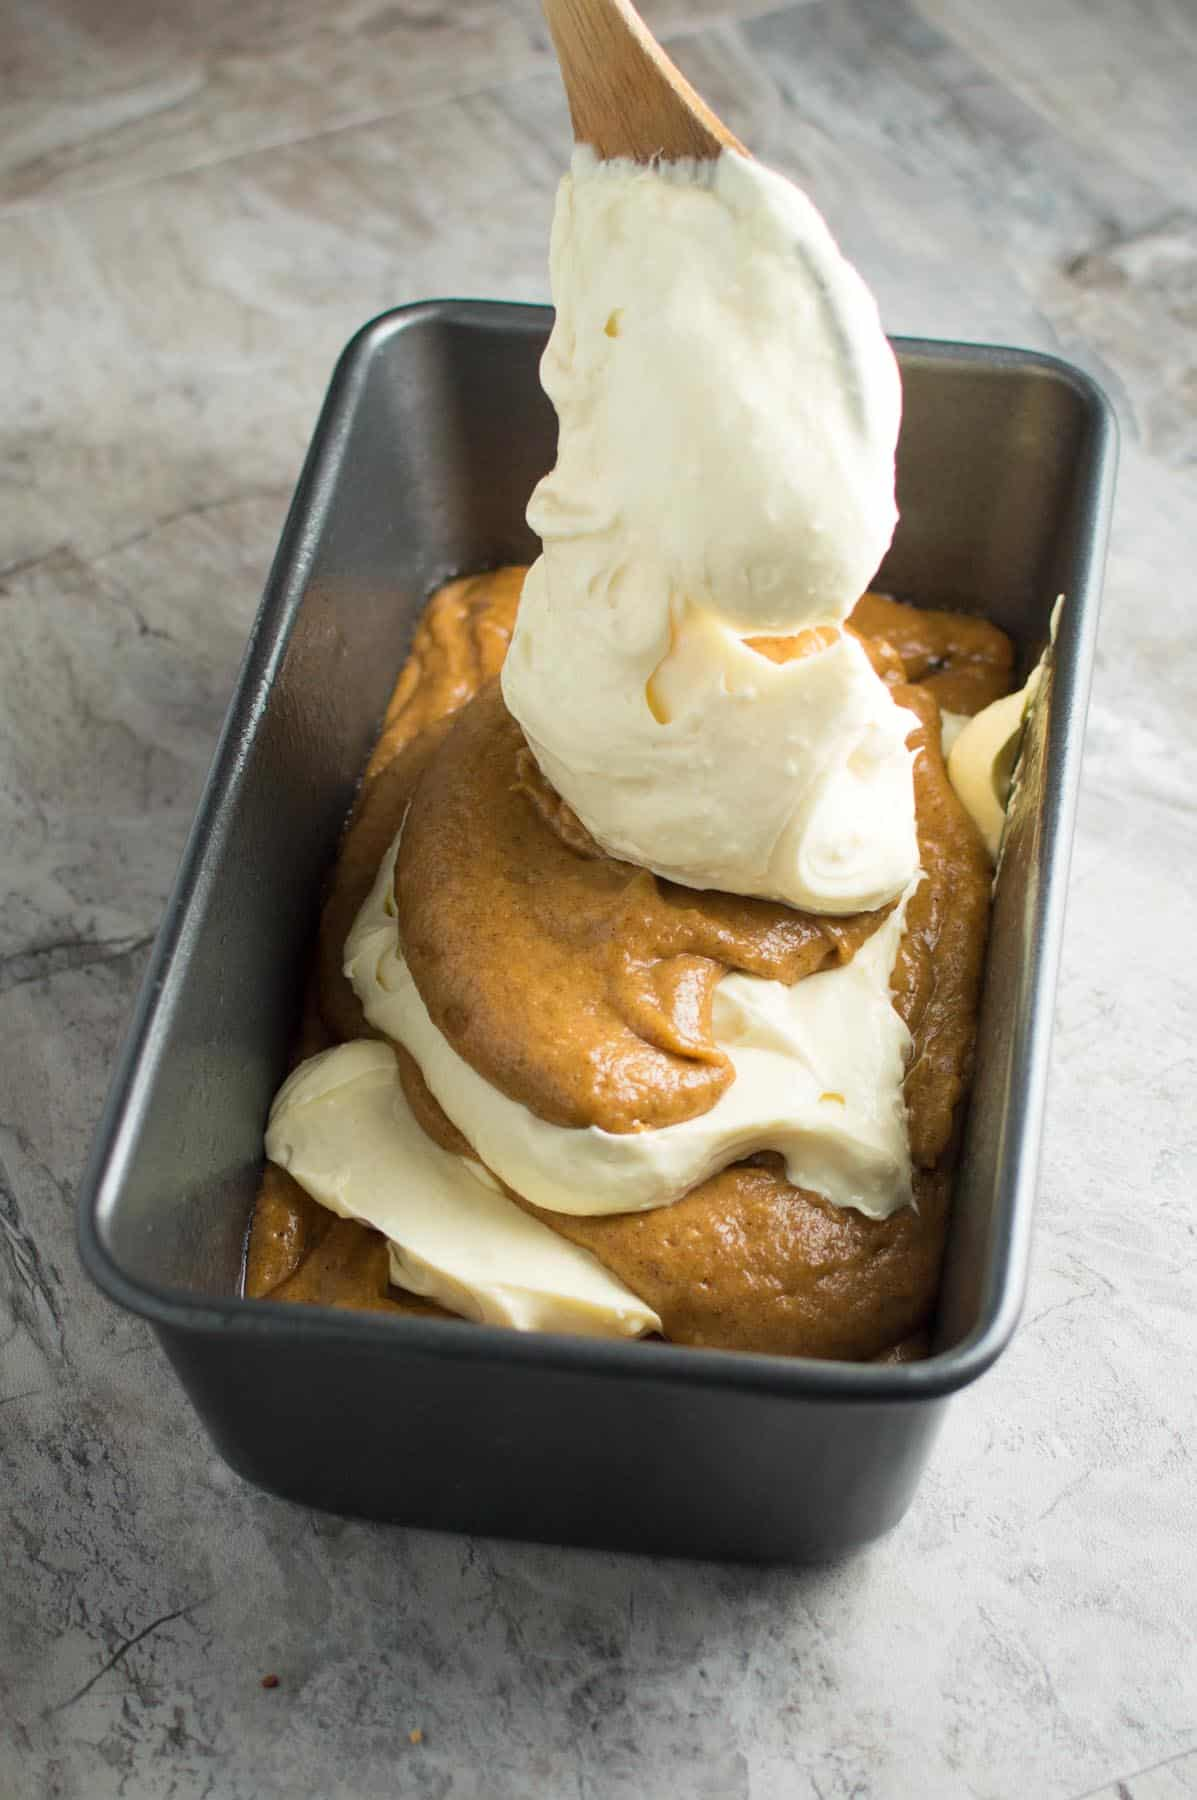 Layering Pumpkin Cream Cheese Swirl Cake Batter in Pan